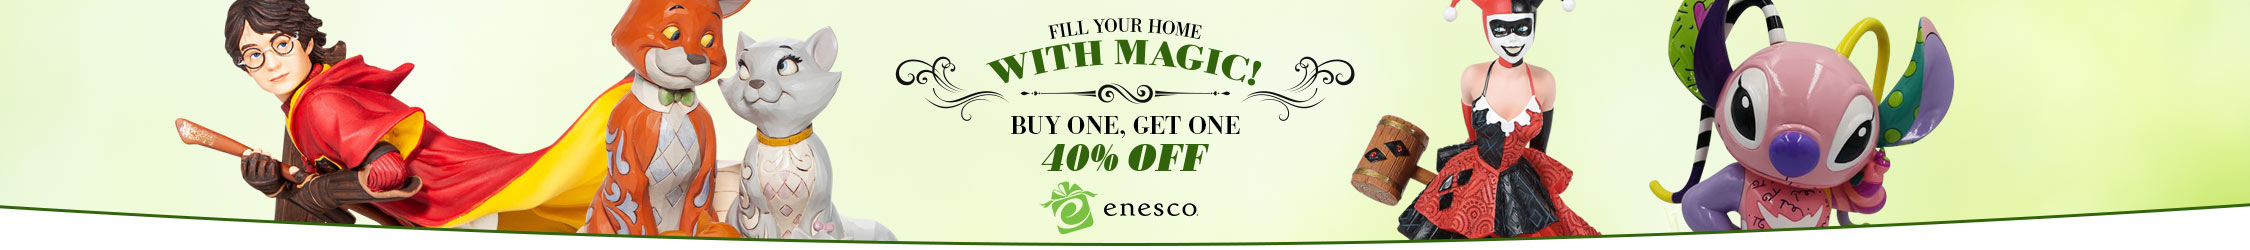 Buy One Get One 40% Off Enesco